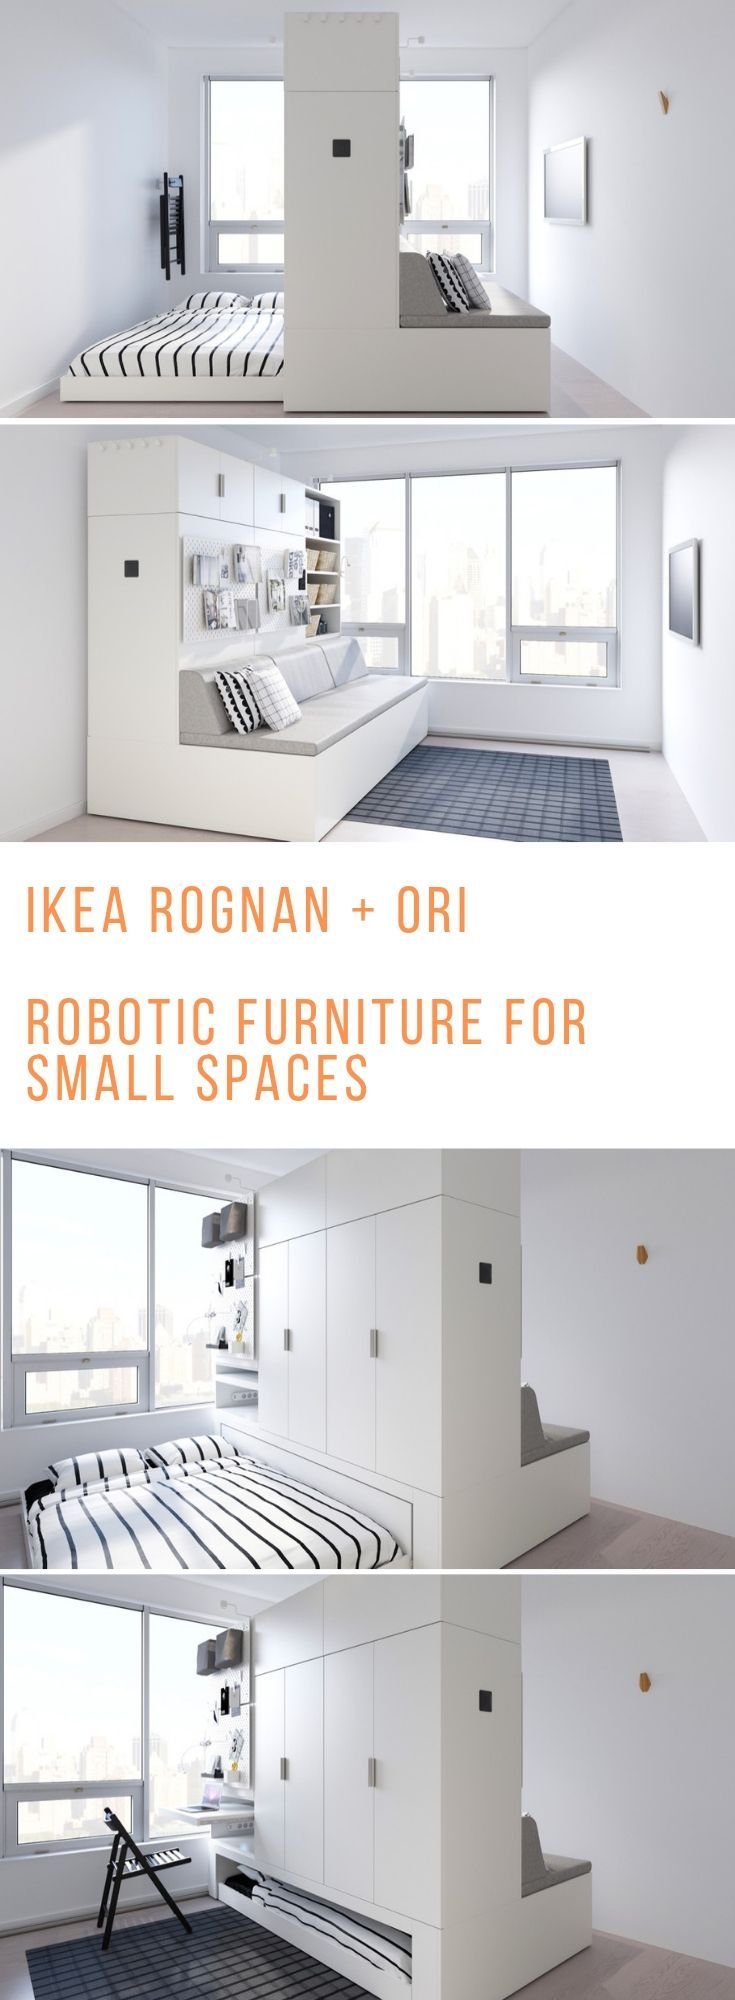 Robotic Furniture: IKEA's new big thing for tiny spaces